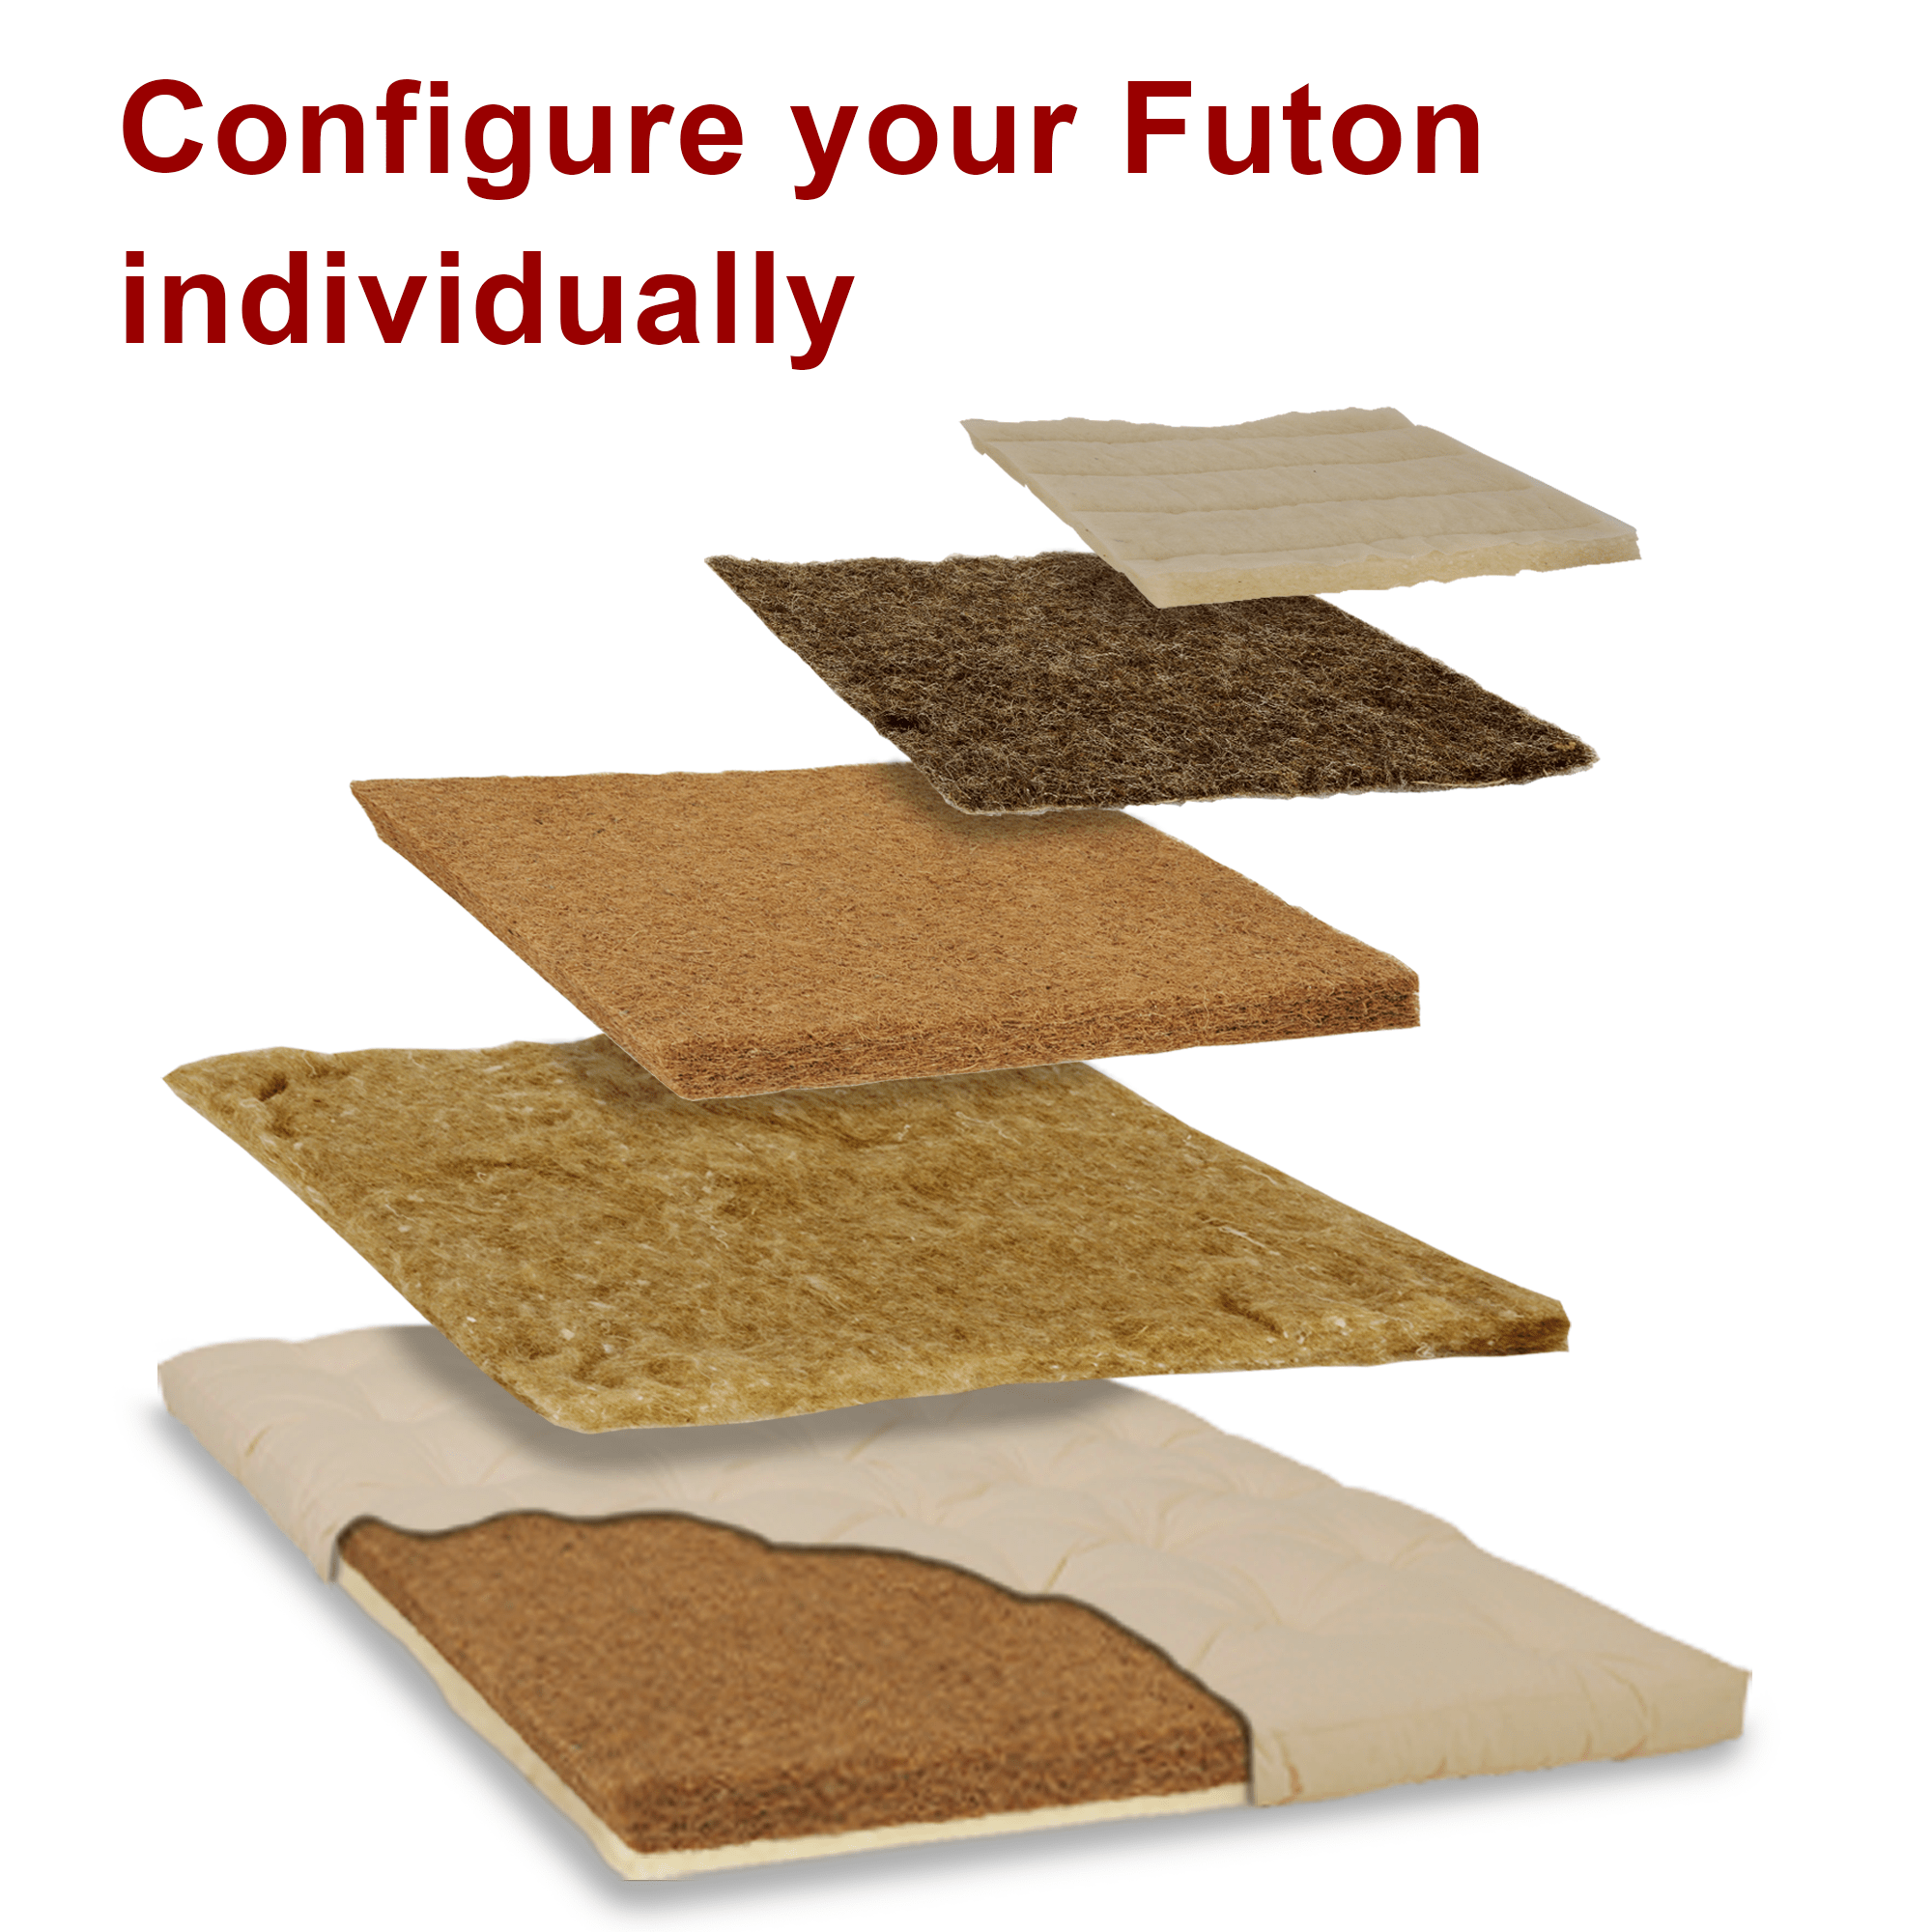 Futons Berlin Futon24 Manufactory Futons And Natural Mattresses Online